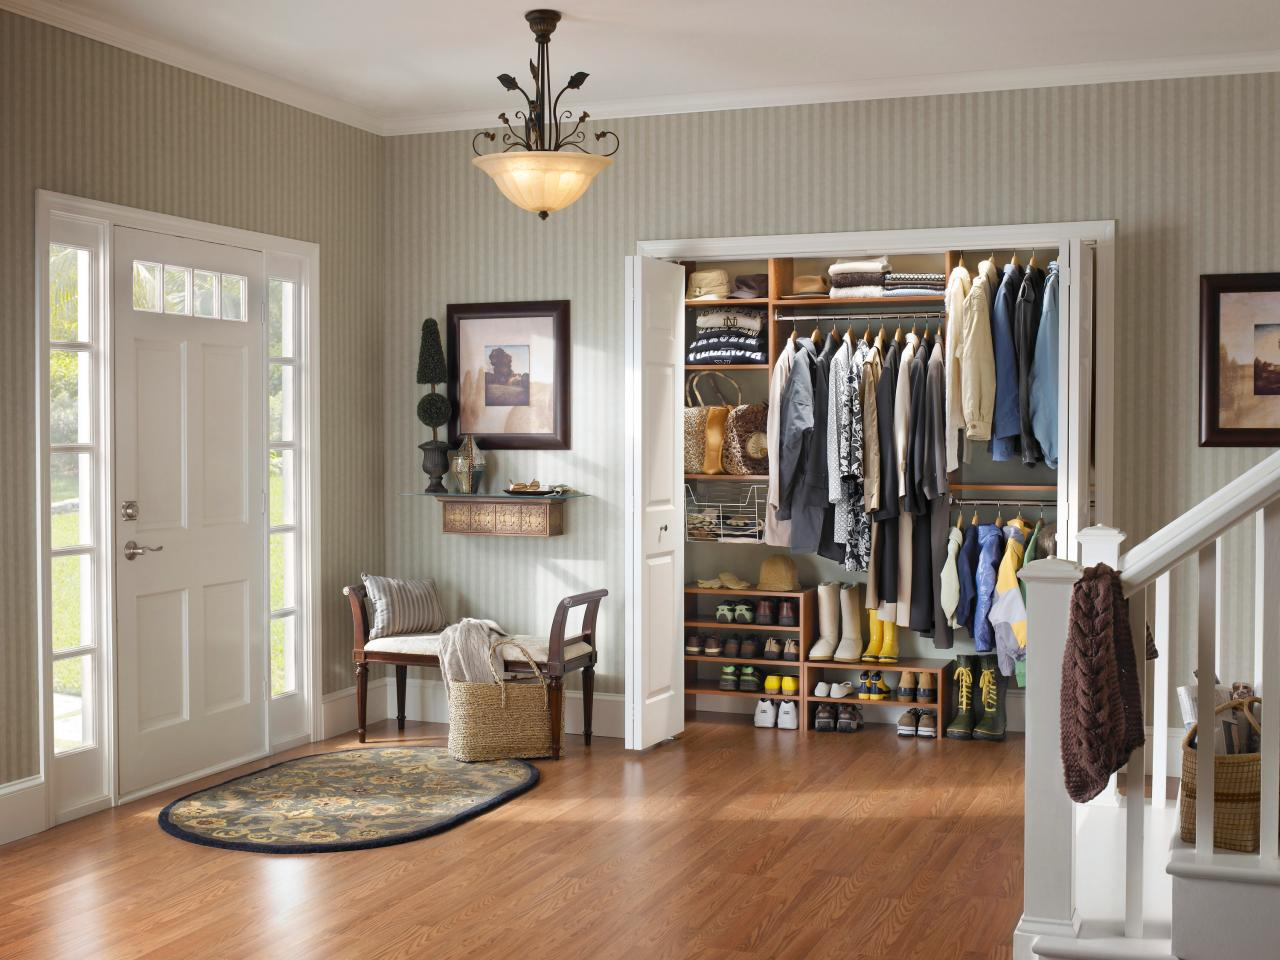 Small House No Foyer : Small closet organization ideas pictures options tips